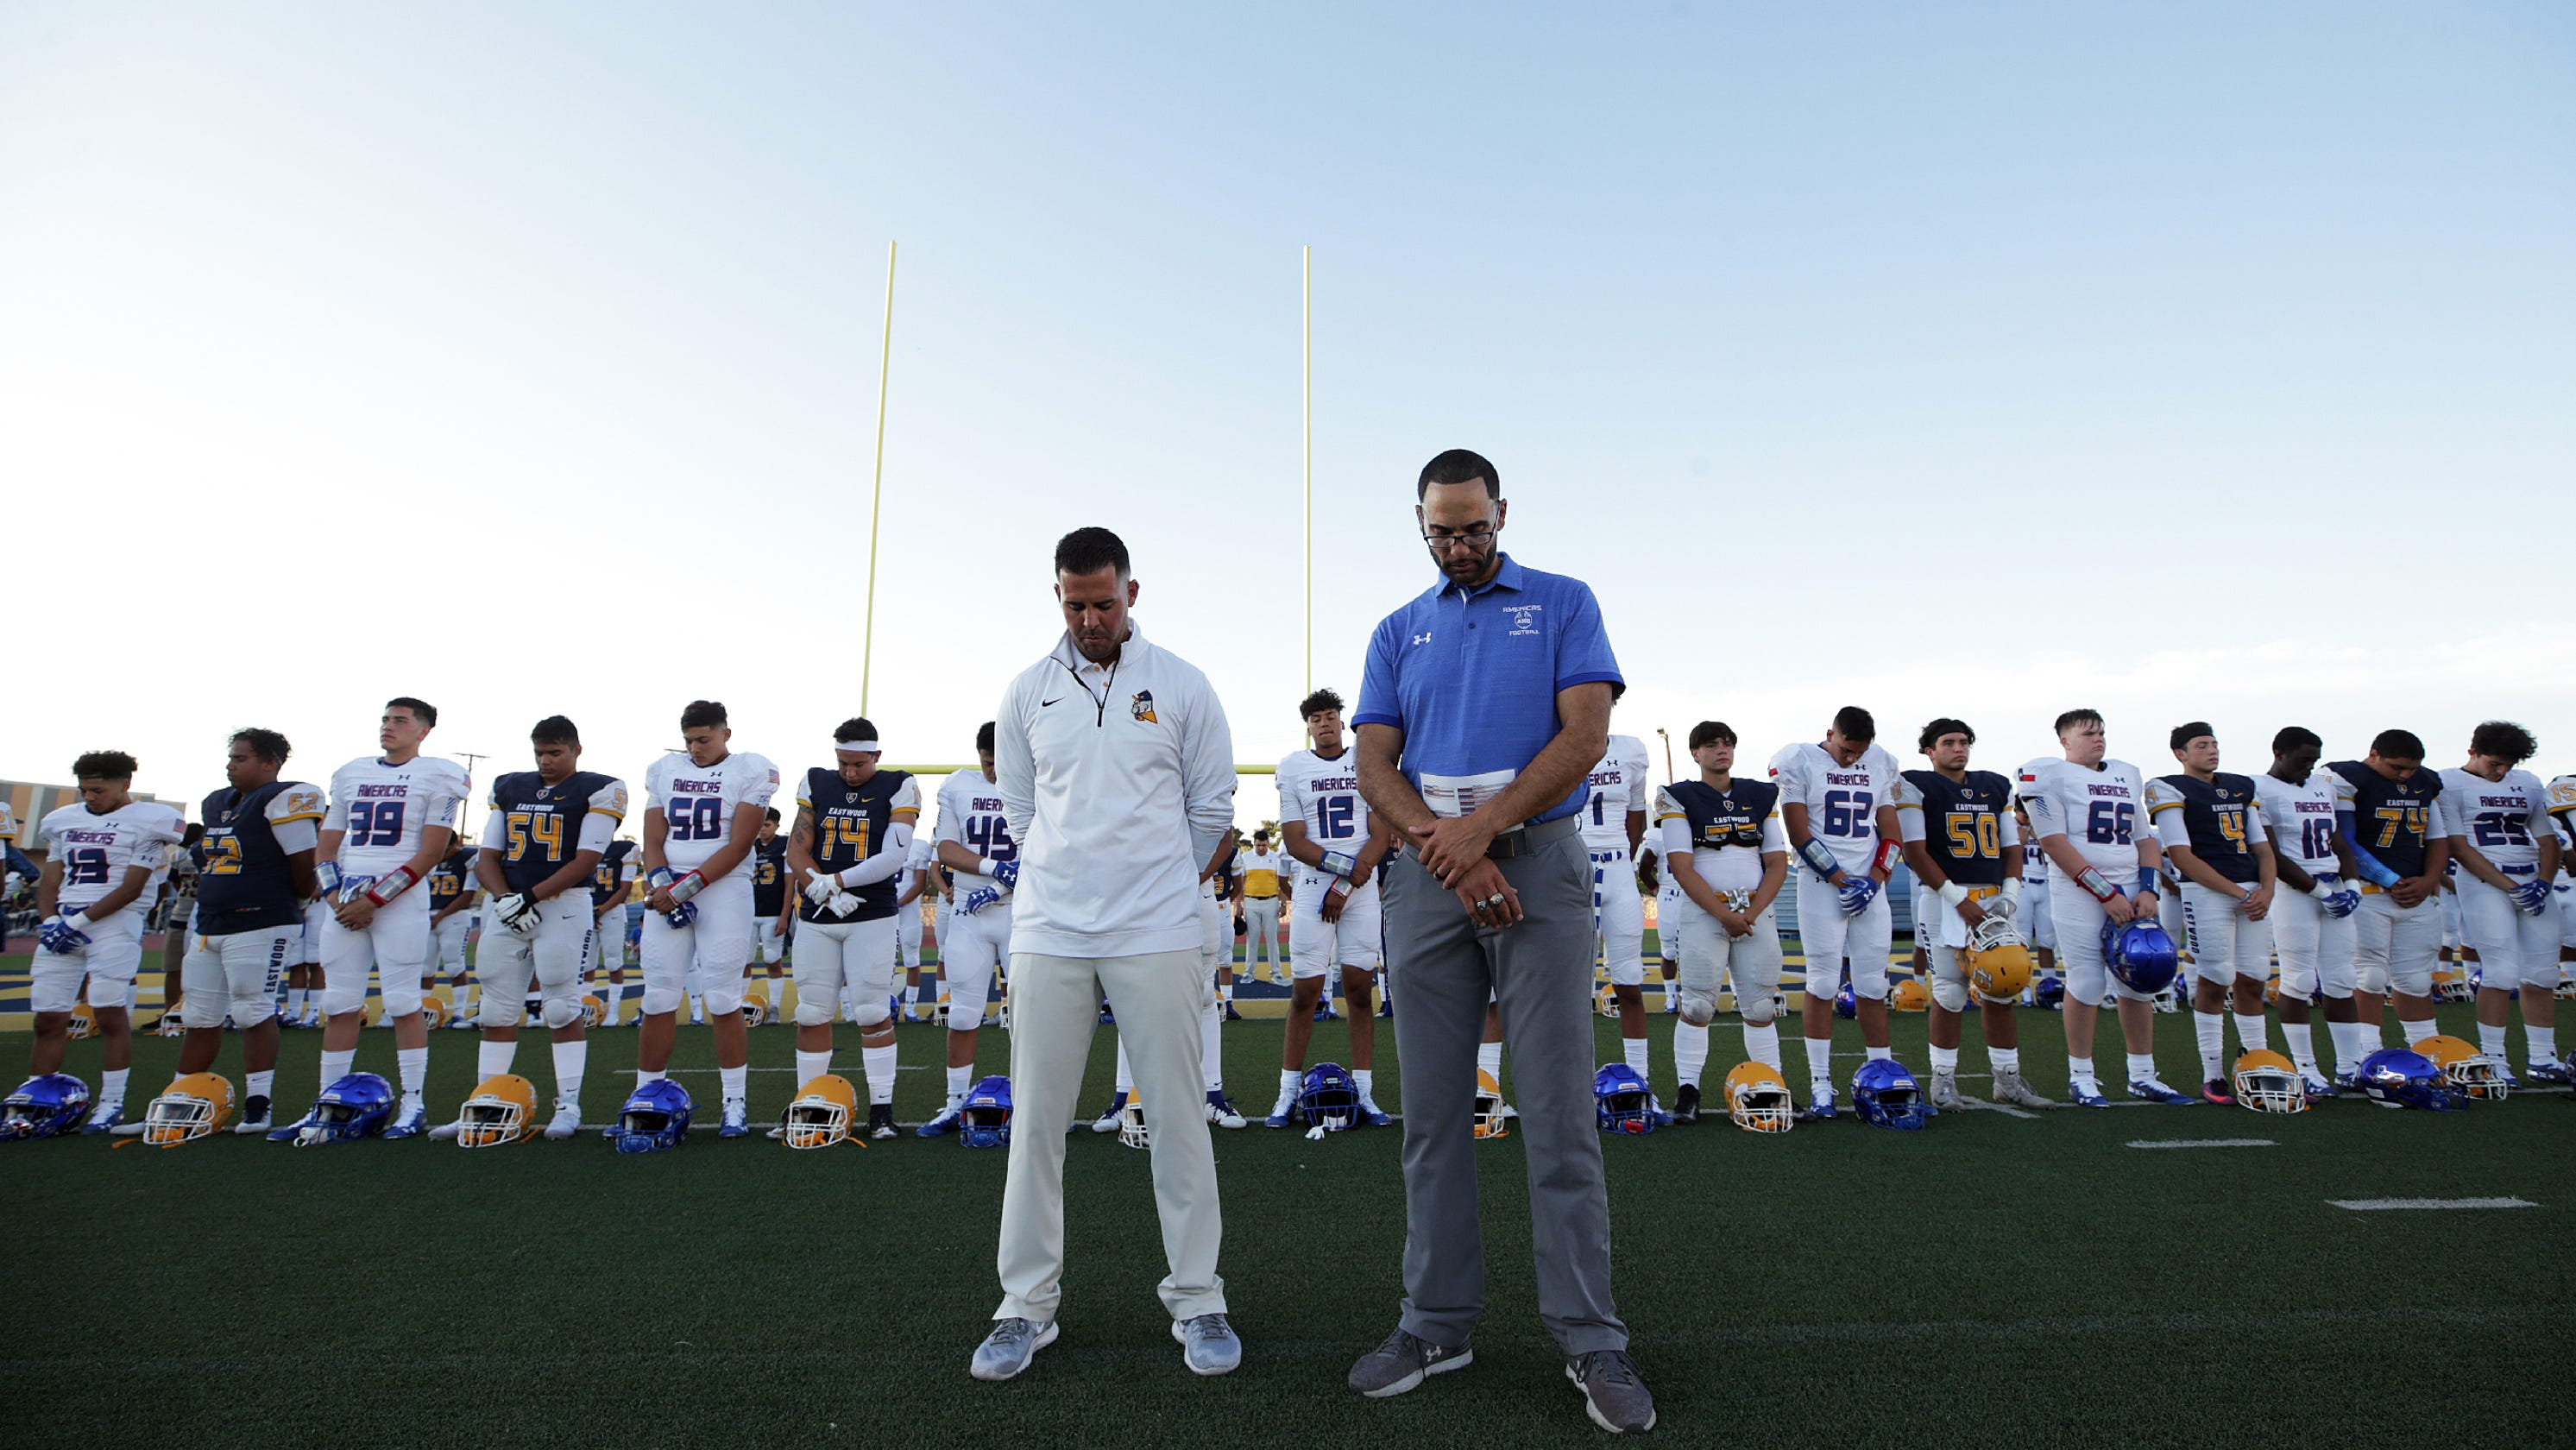 Eastwood, Plano use game to unite communities after mass